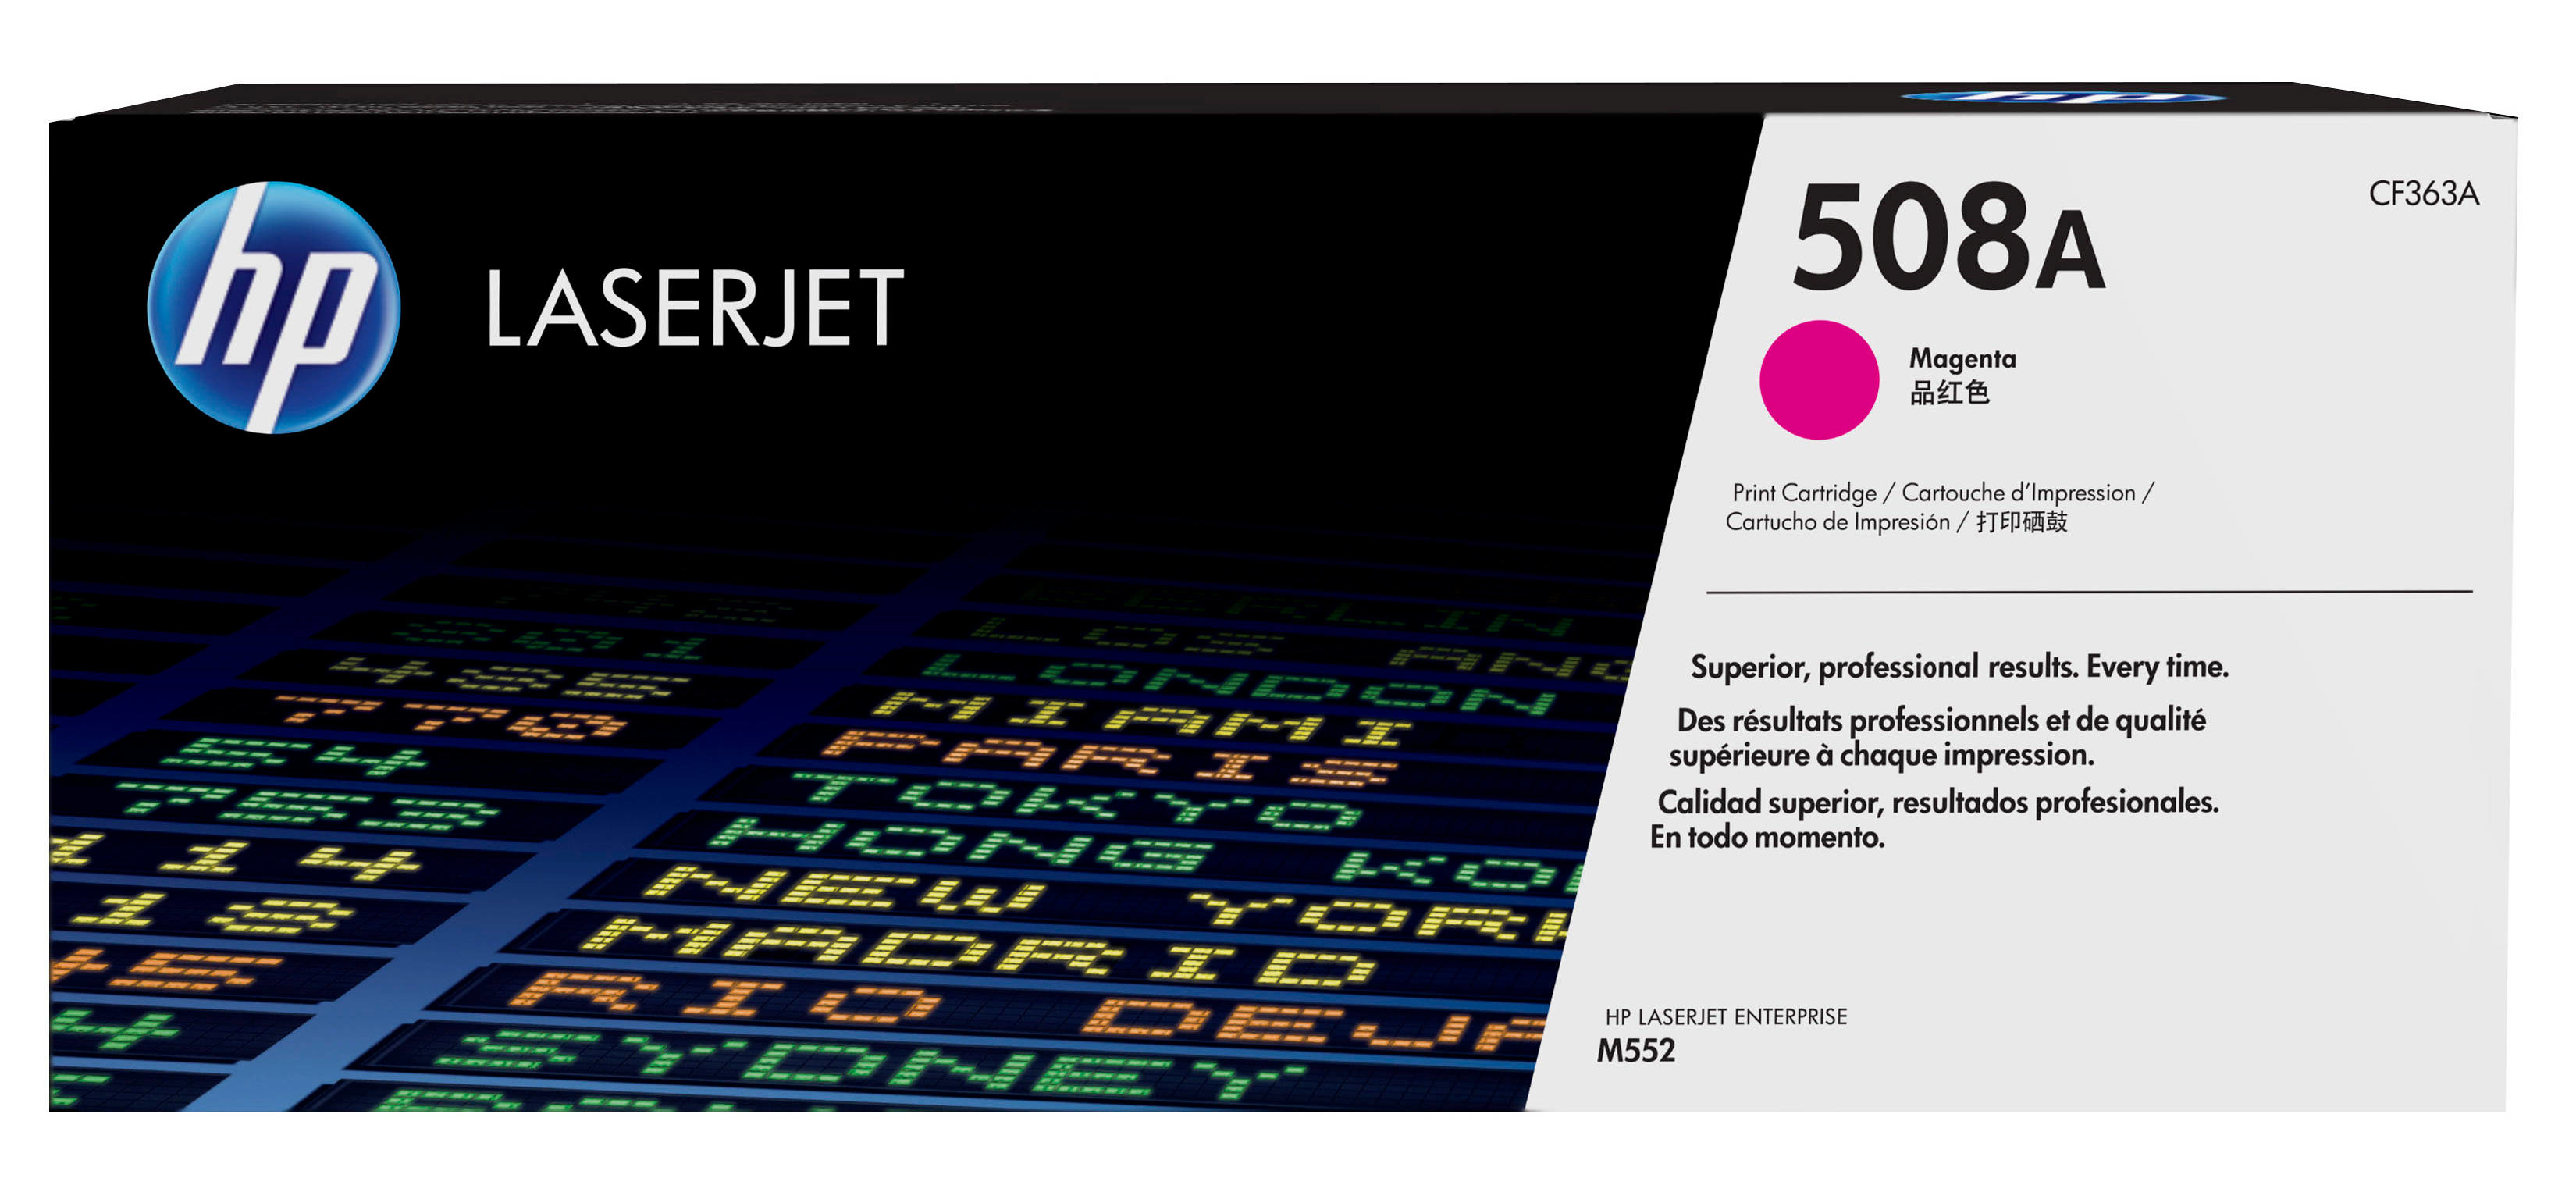 HP 508A - CF363A - 1 X Magenta - Toner Cartridge - For Color LaserJet Enterprise M552dn, M553dn, M553n, M553x CF363A - C2000